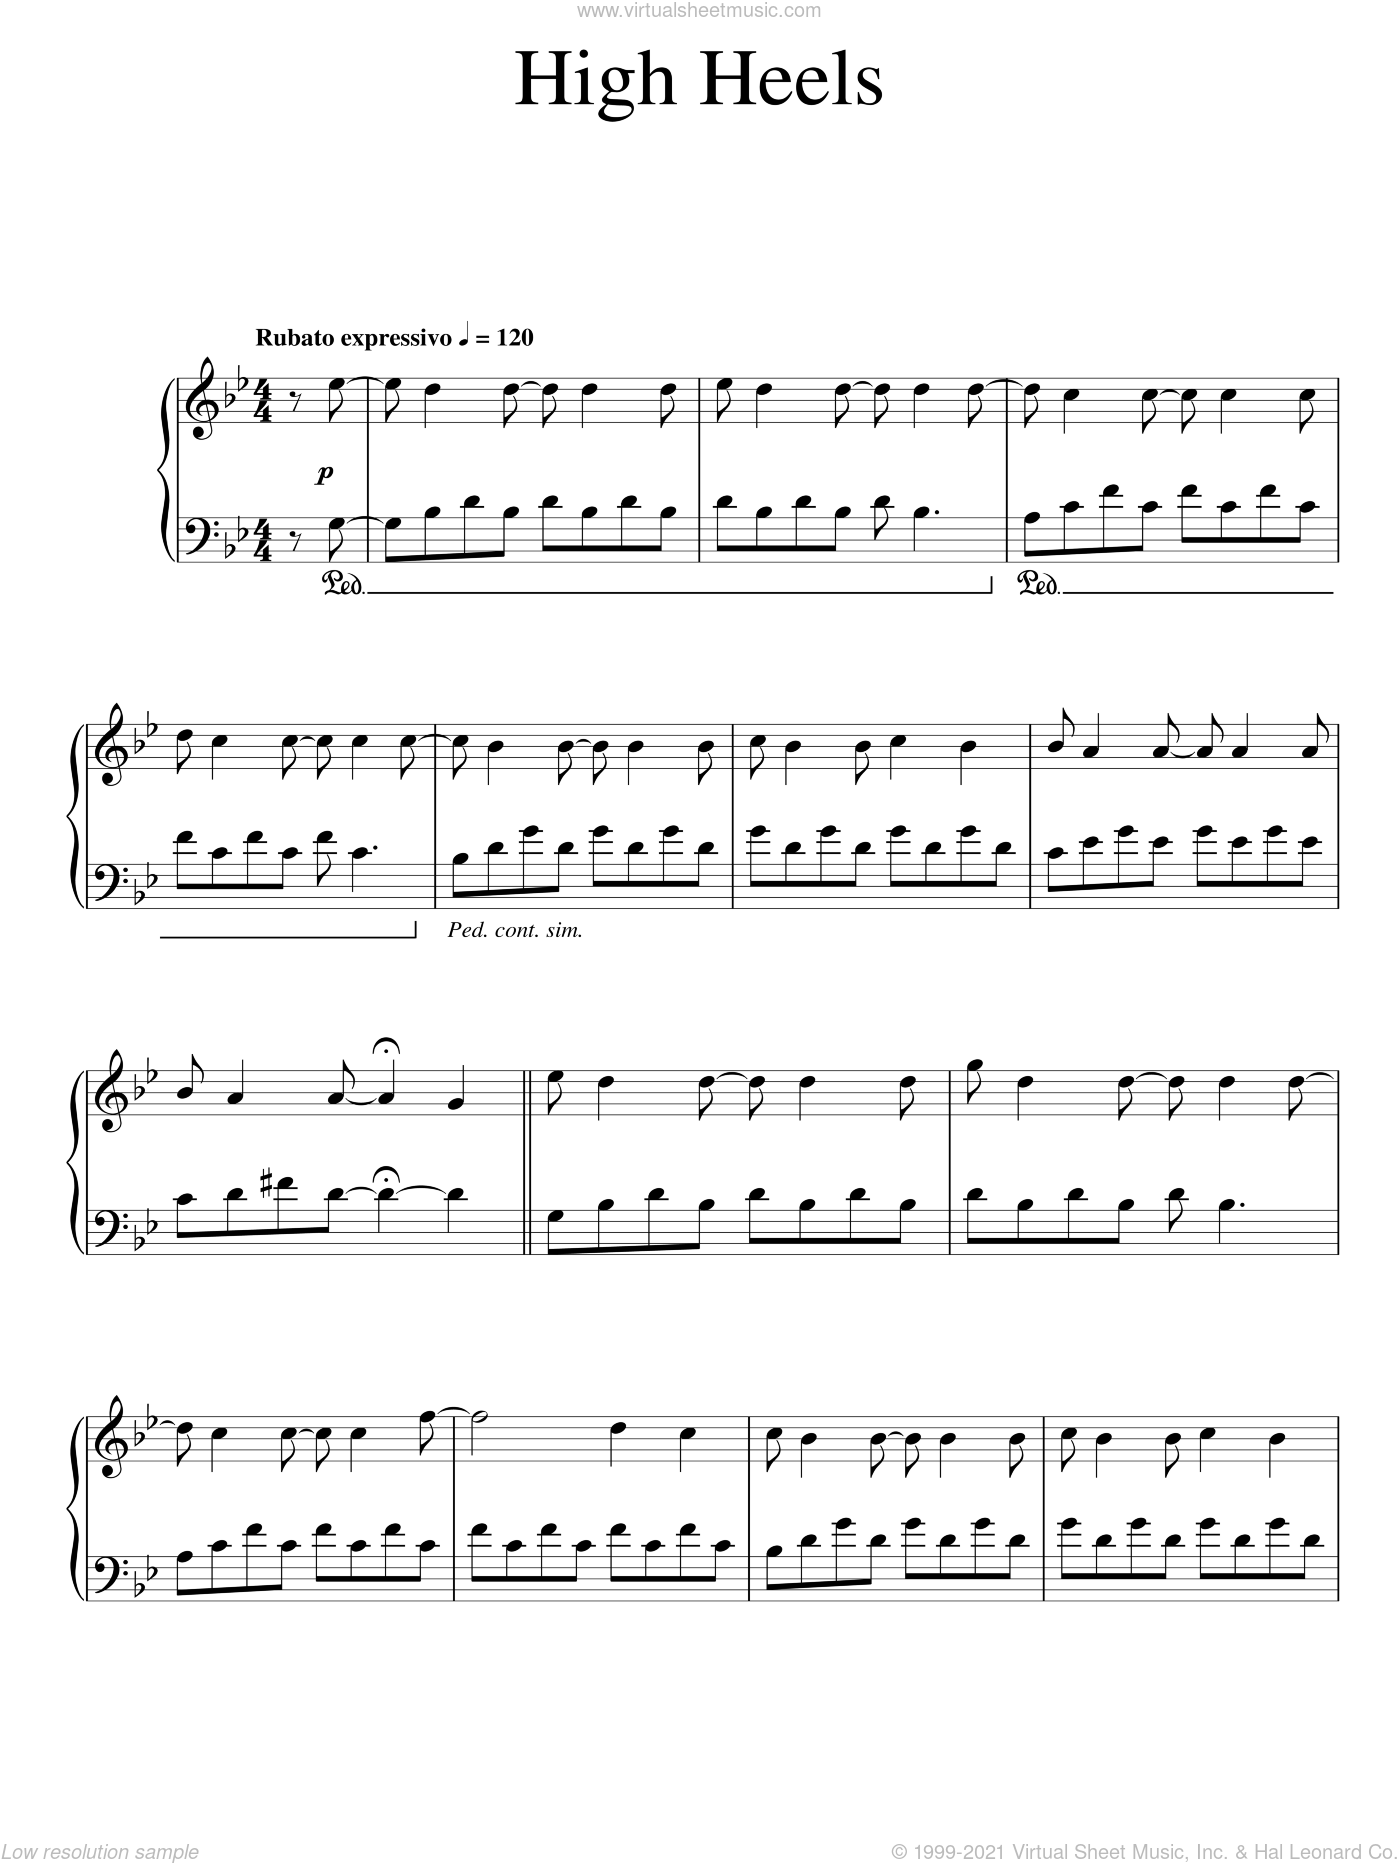 High Heels sheet music for piano solo by Ludovico Einaudi, classical score, intermediate skill level